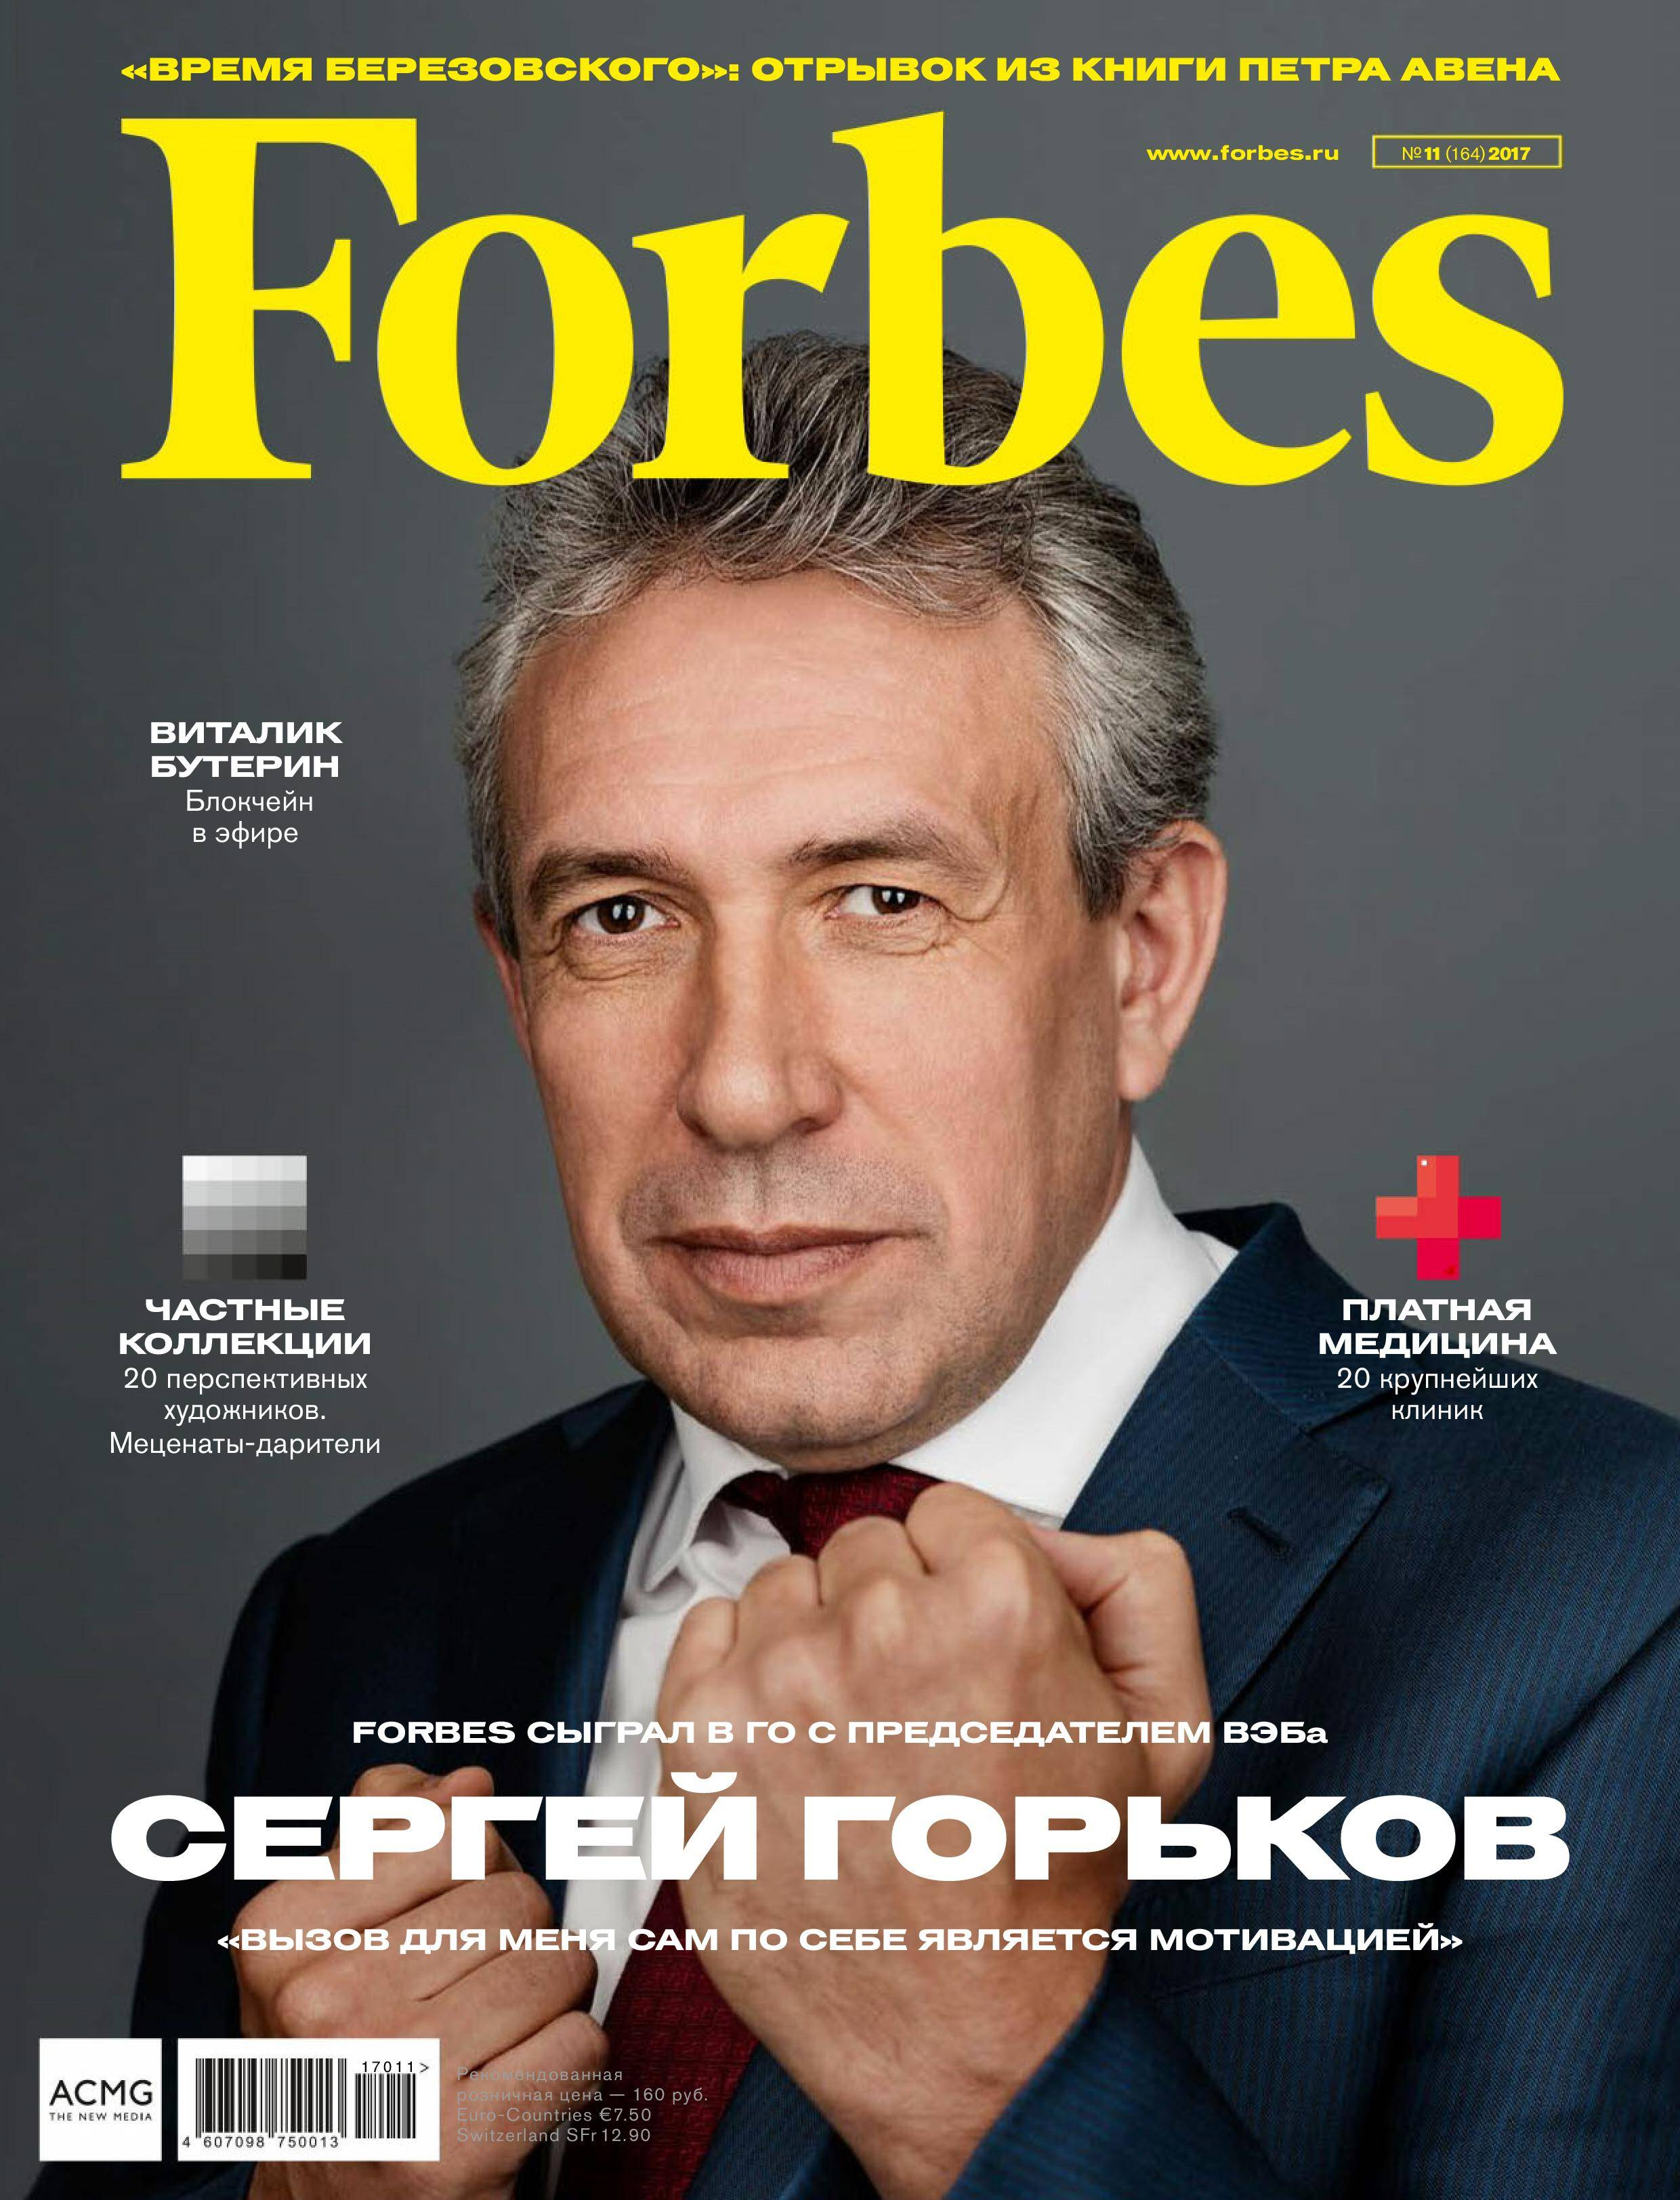 image sour forbes publishes - HD 2480×3248